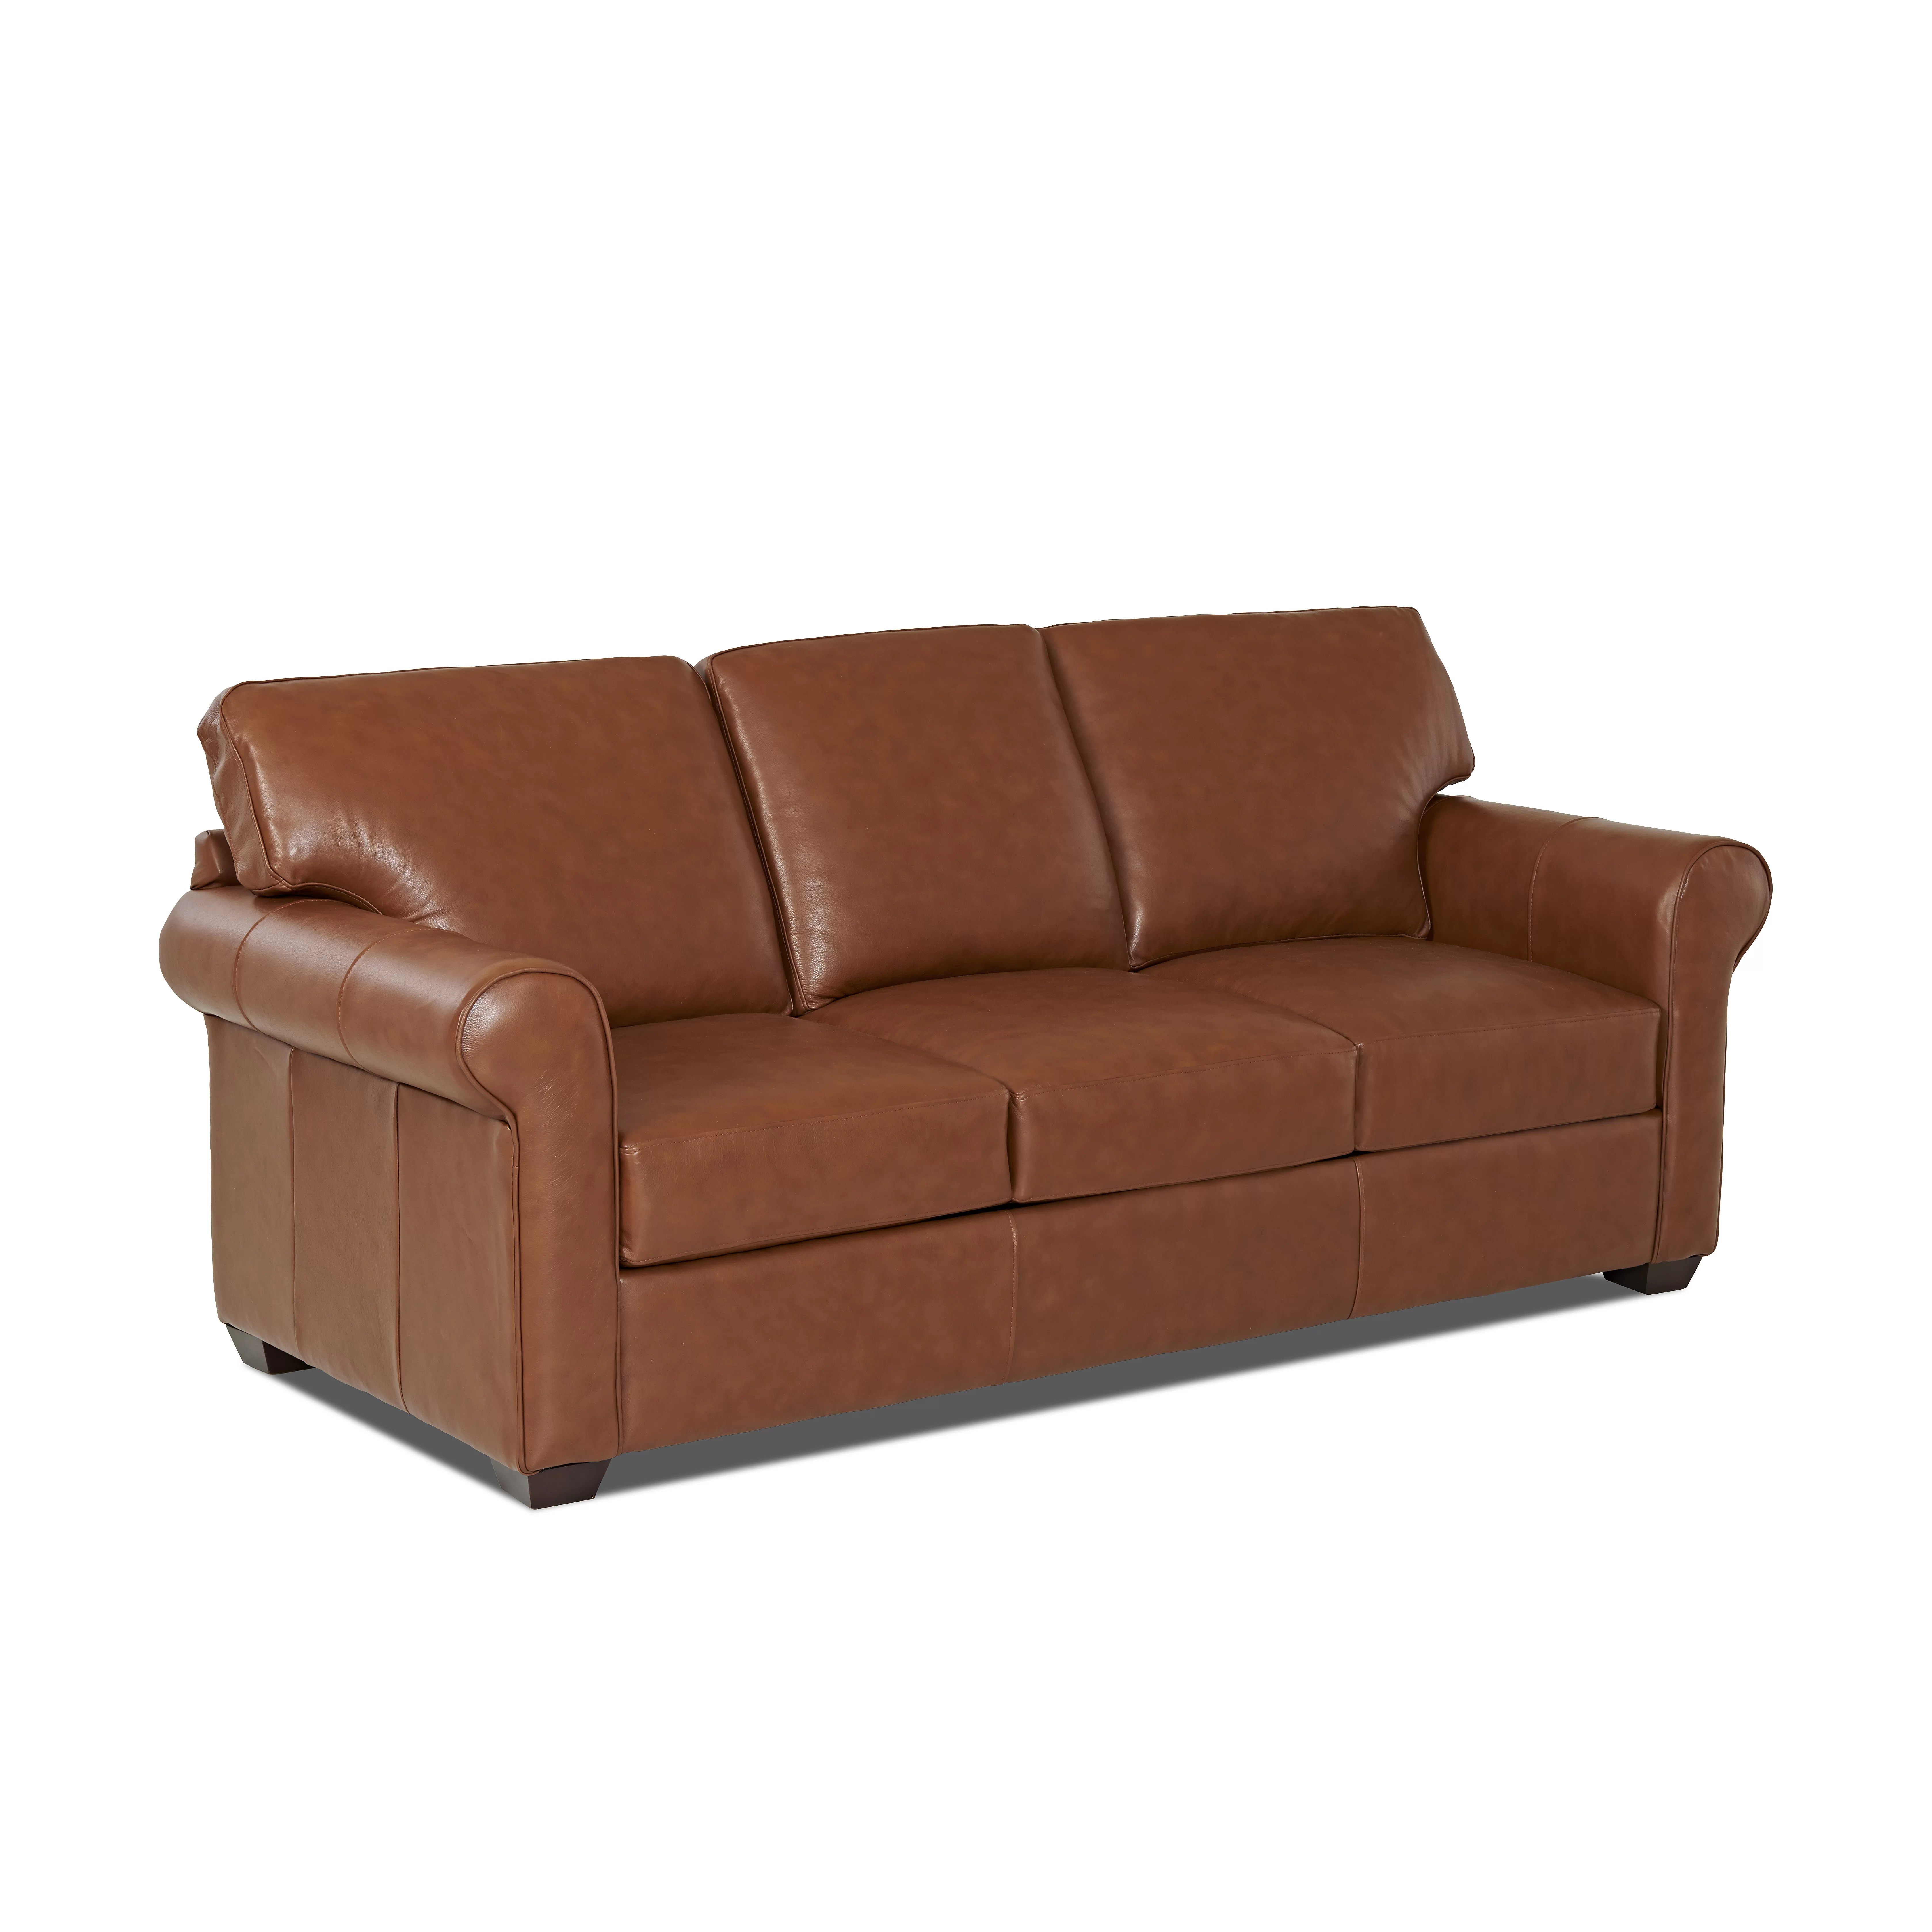 wayfair furniture sofa cushion set online custom upholstery rachel leather sleeper